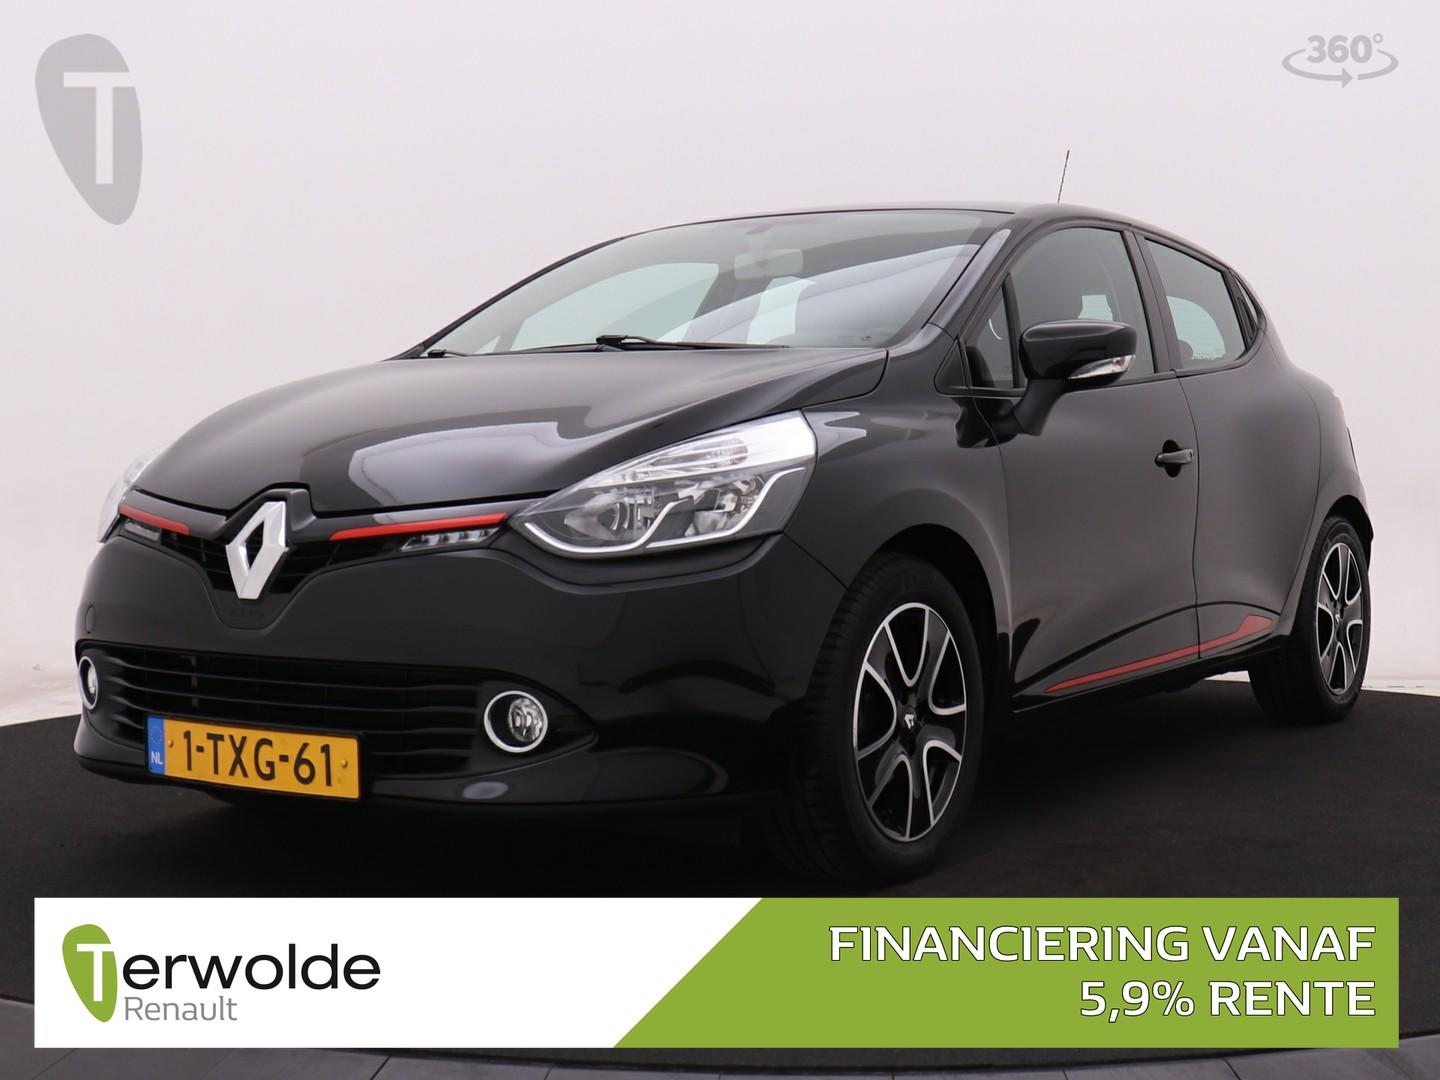 Renault Clio 0.9 tce 90 pk expression